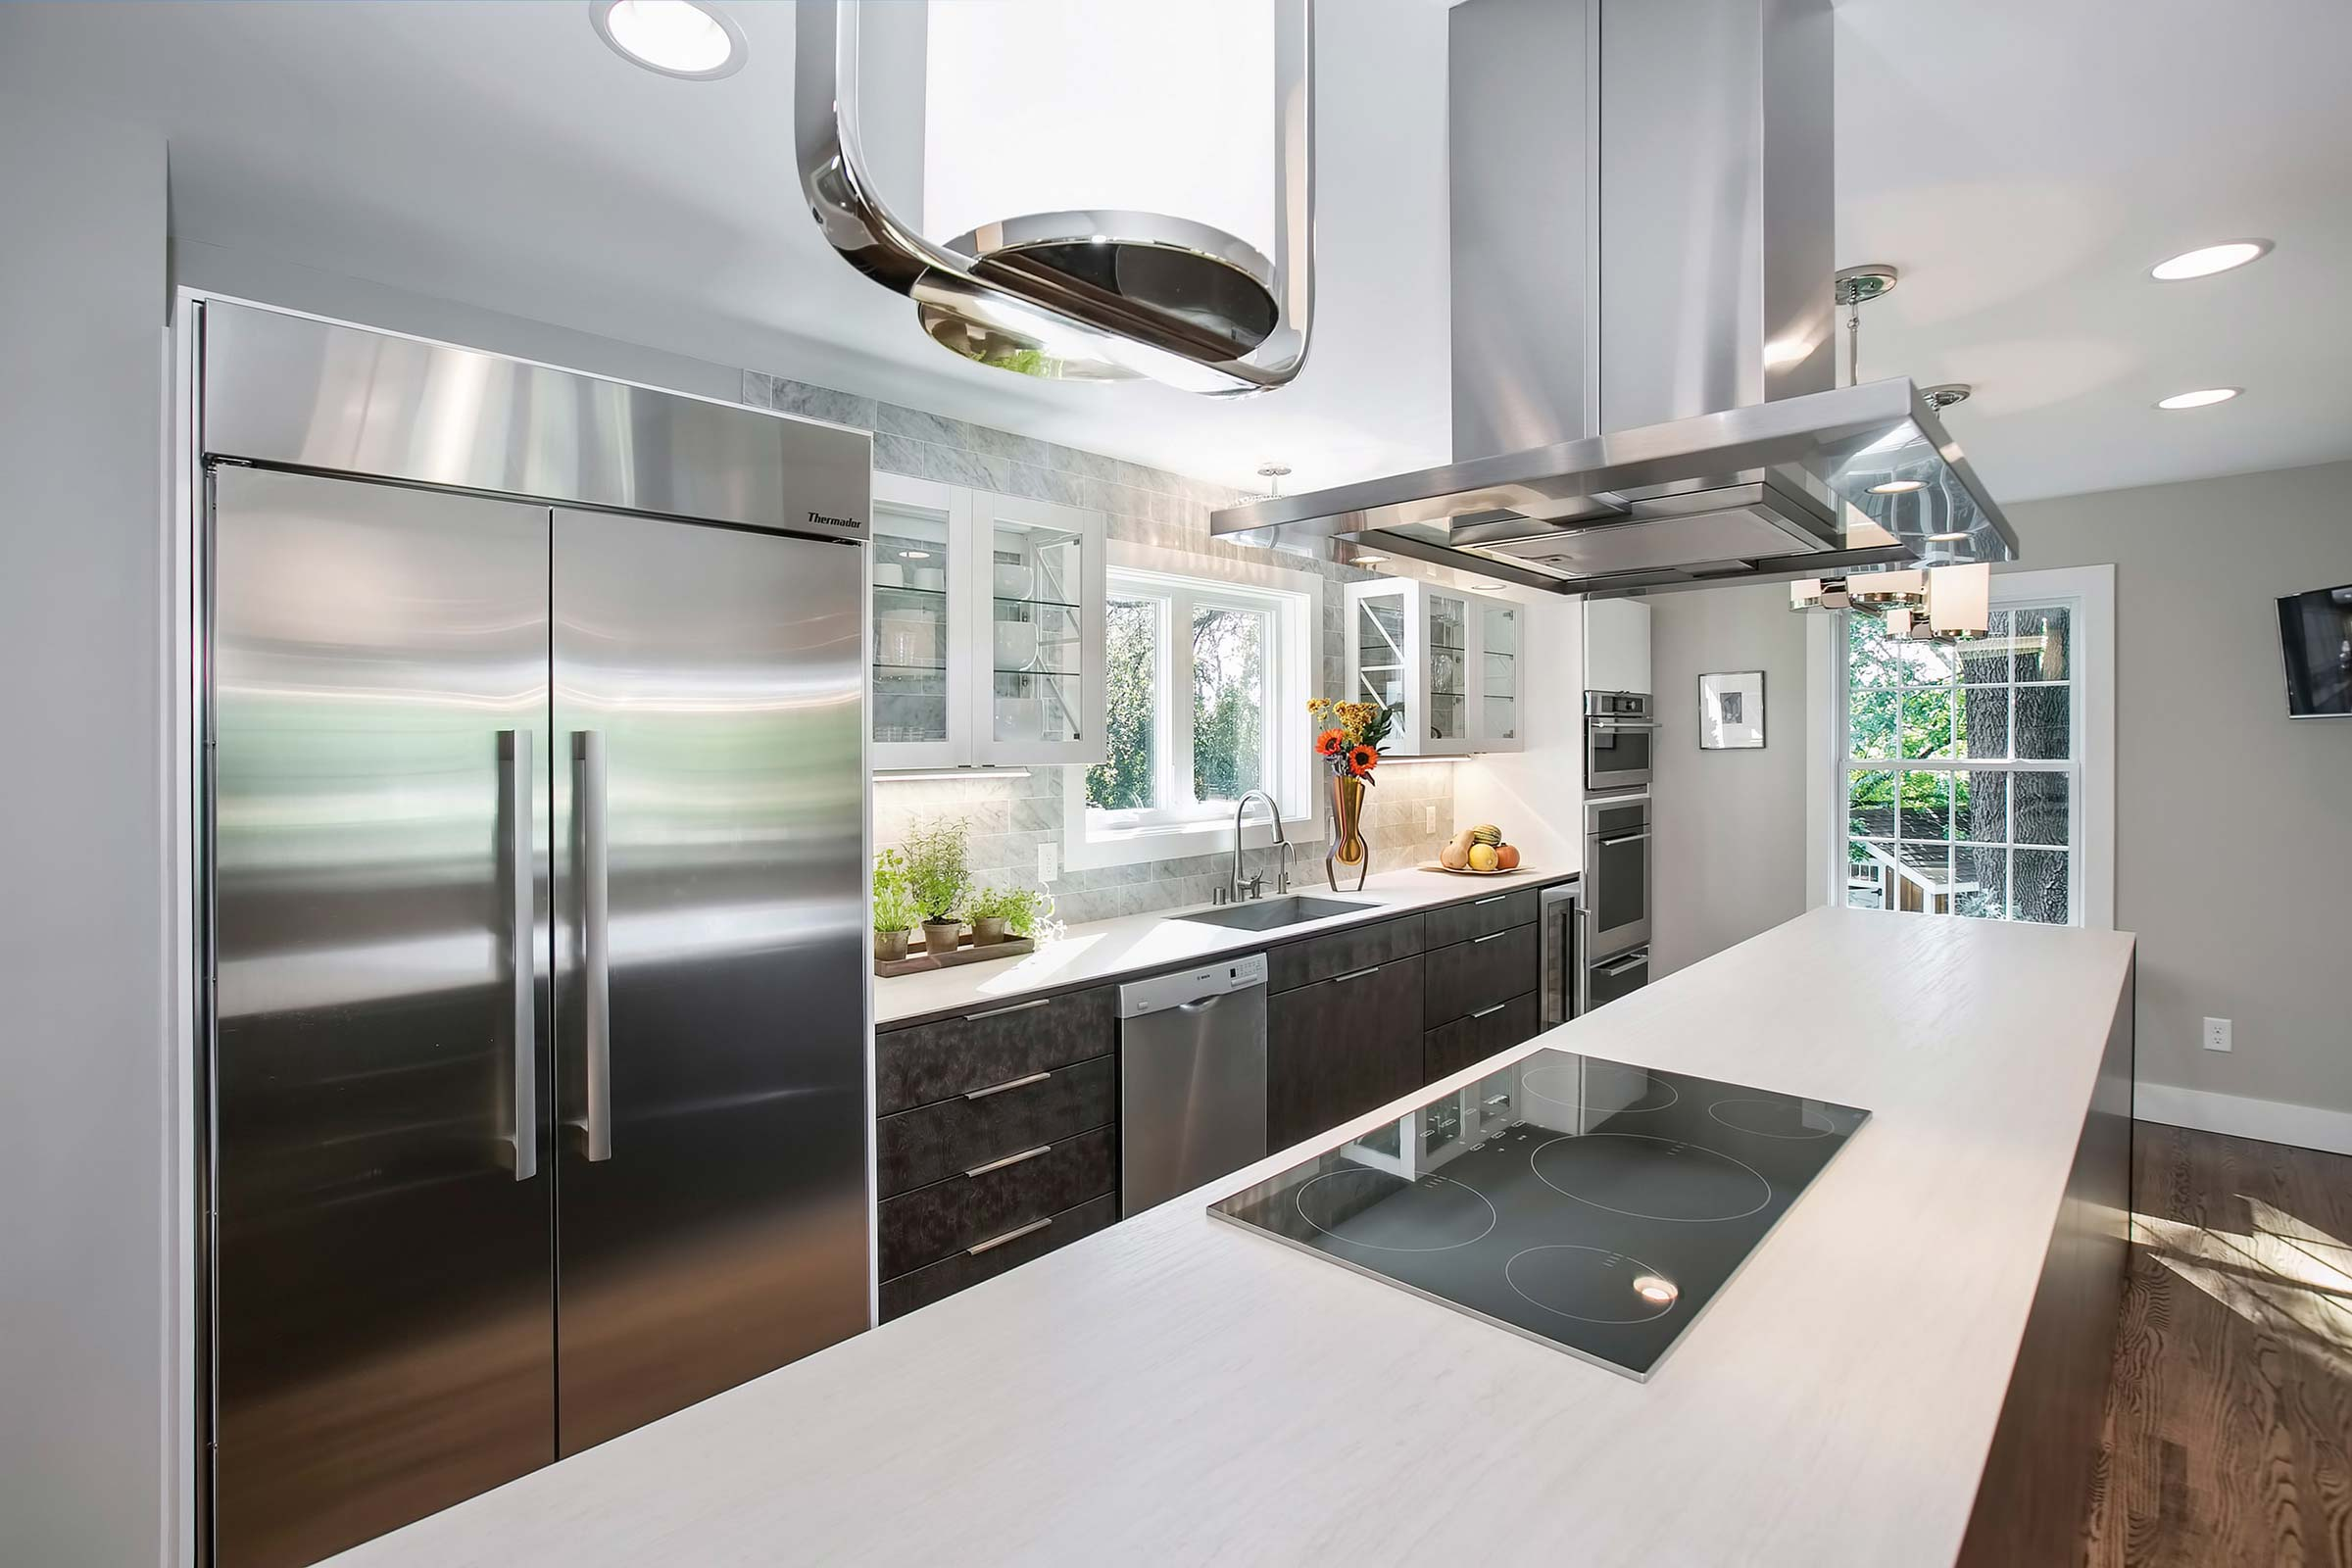 Eco friendly kitchens - Scandinavian, Modern, Traditional, Contemporary